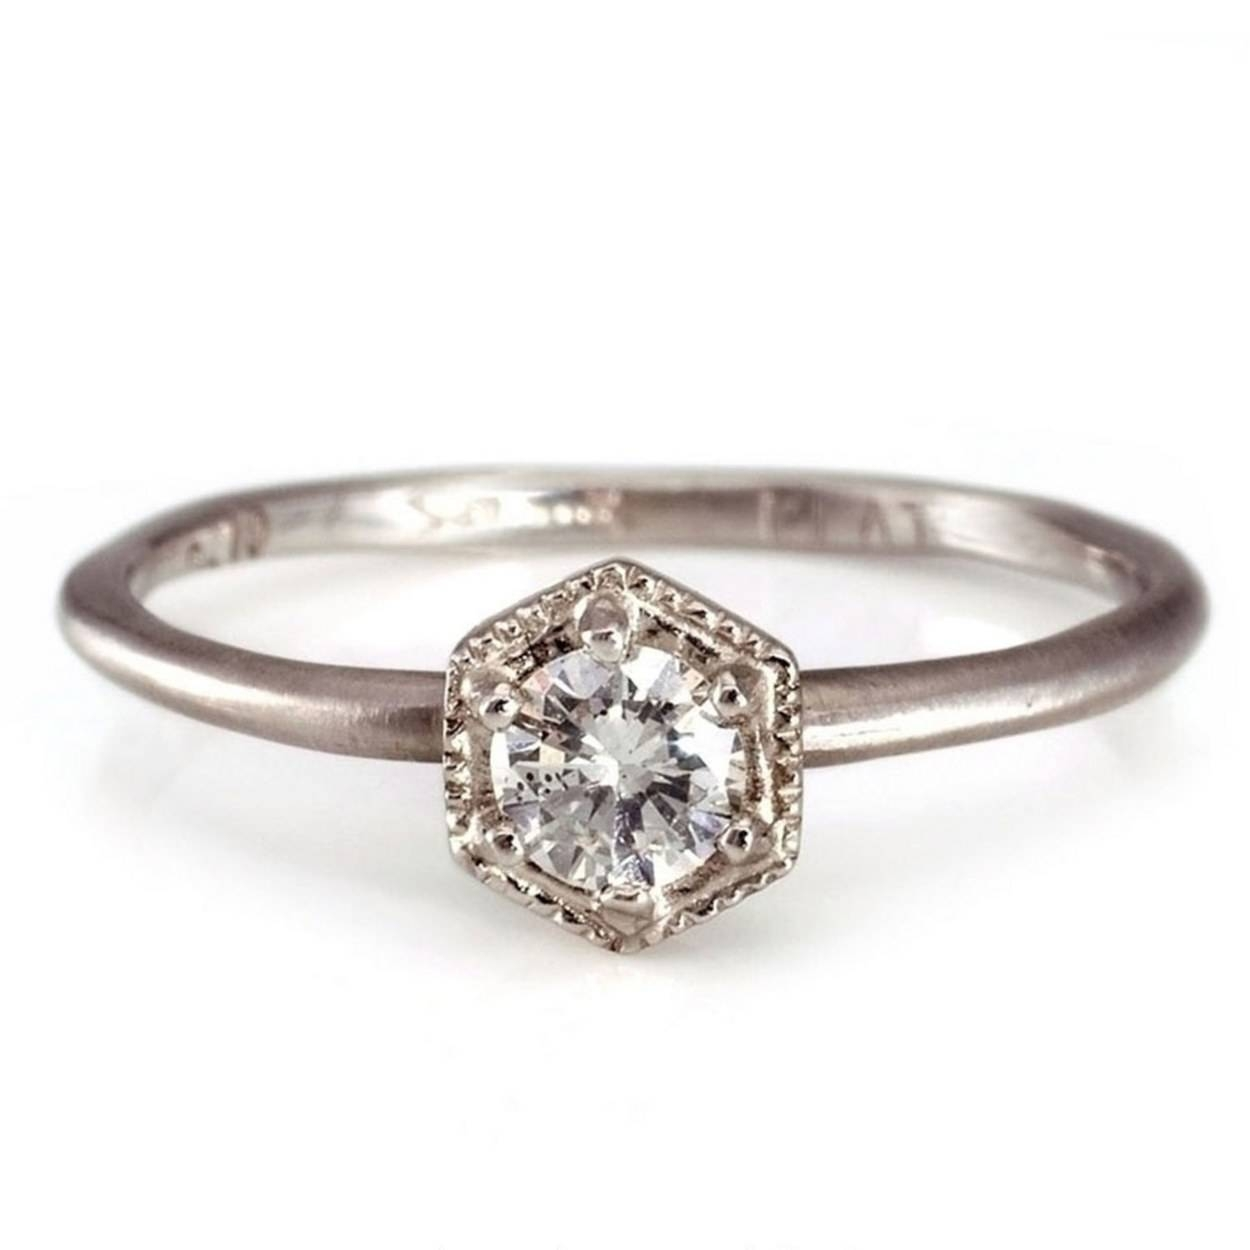 Affordable Engagement Rings Under $1,000 | Glamour Within Inset Engagement Rings (Gallery 15 of 15)